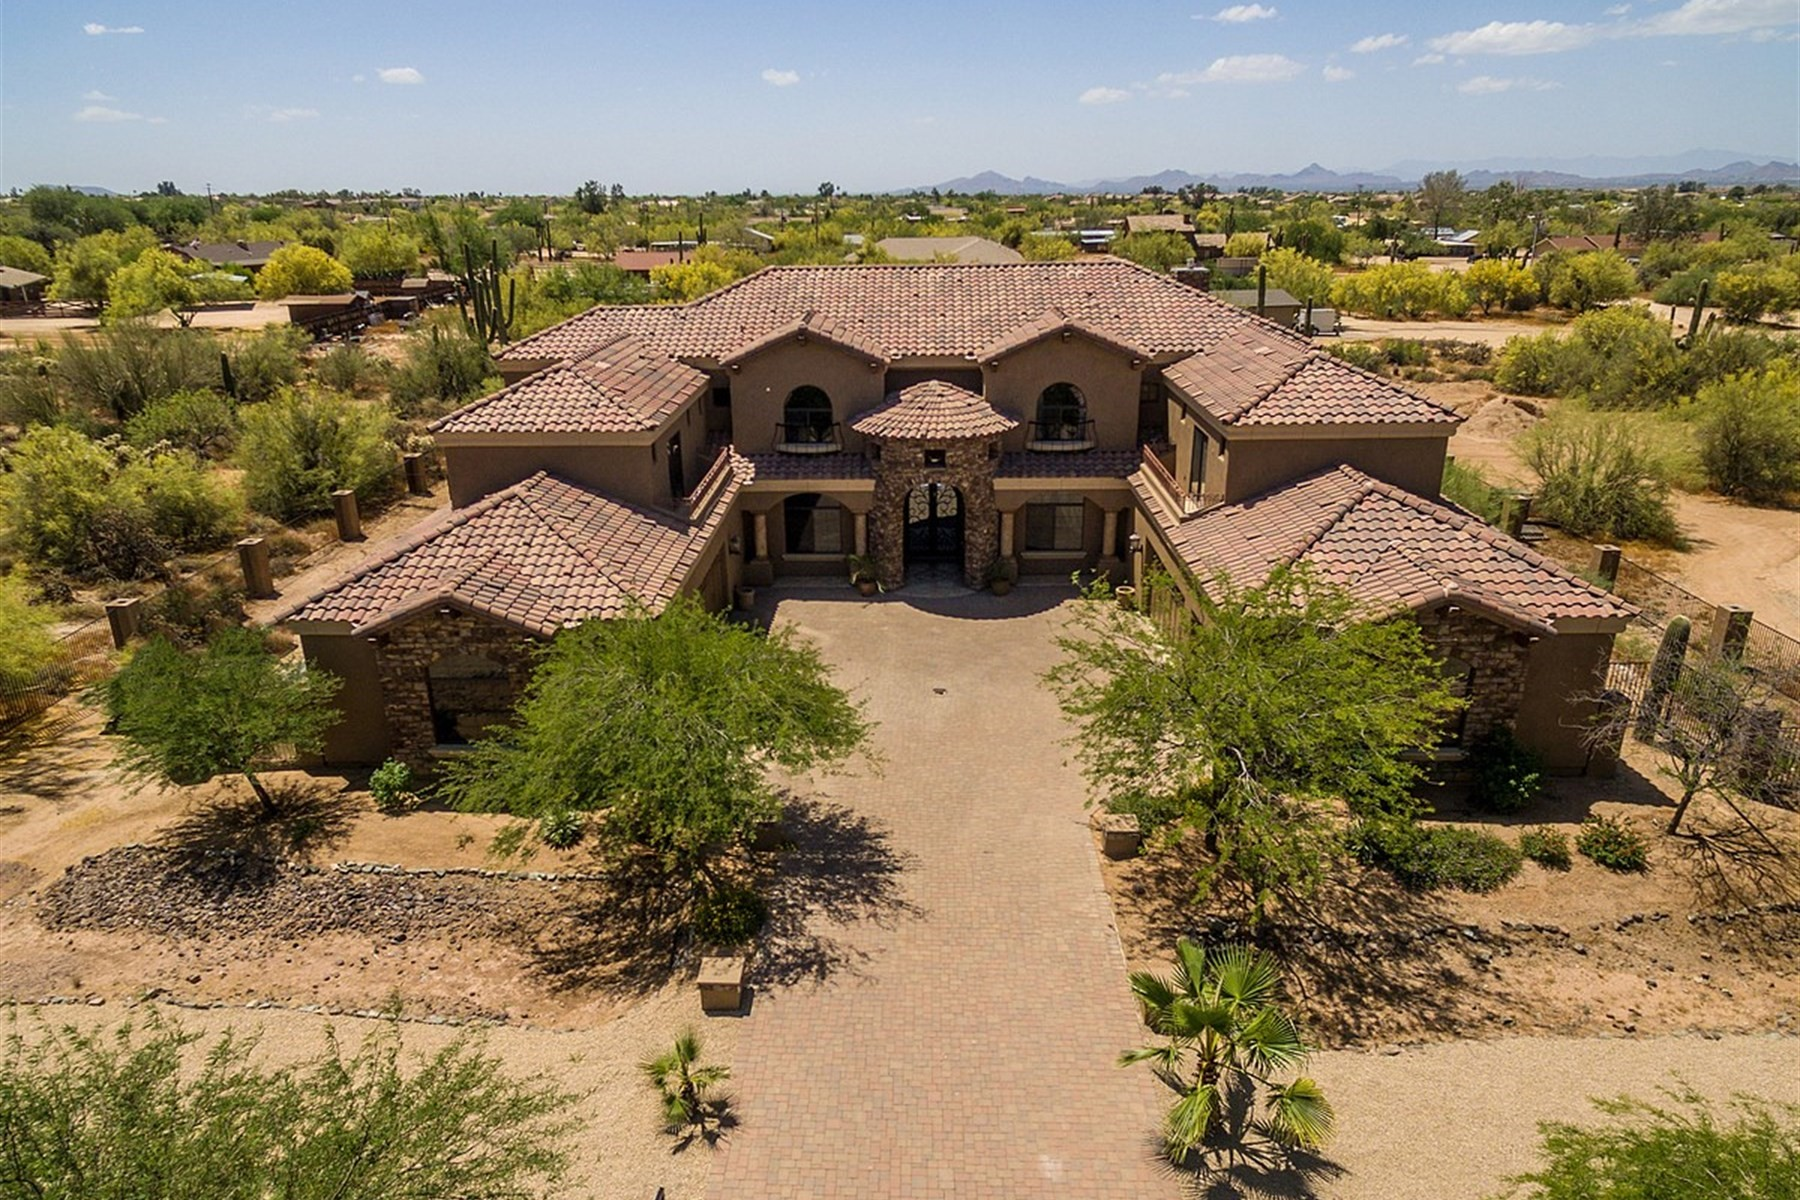 Villa per Vendita alle ore Quality Custom home on a level acre lot in Cave Creek 6221 E Dixileta Dr Cave Creek, Arizona, 85331 Stati Uniti